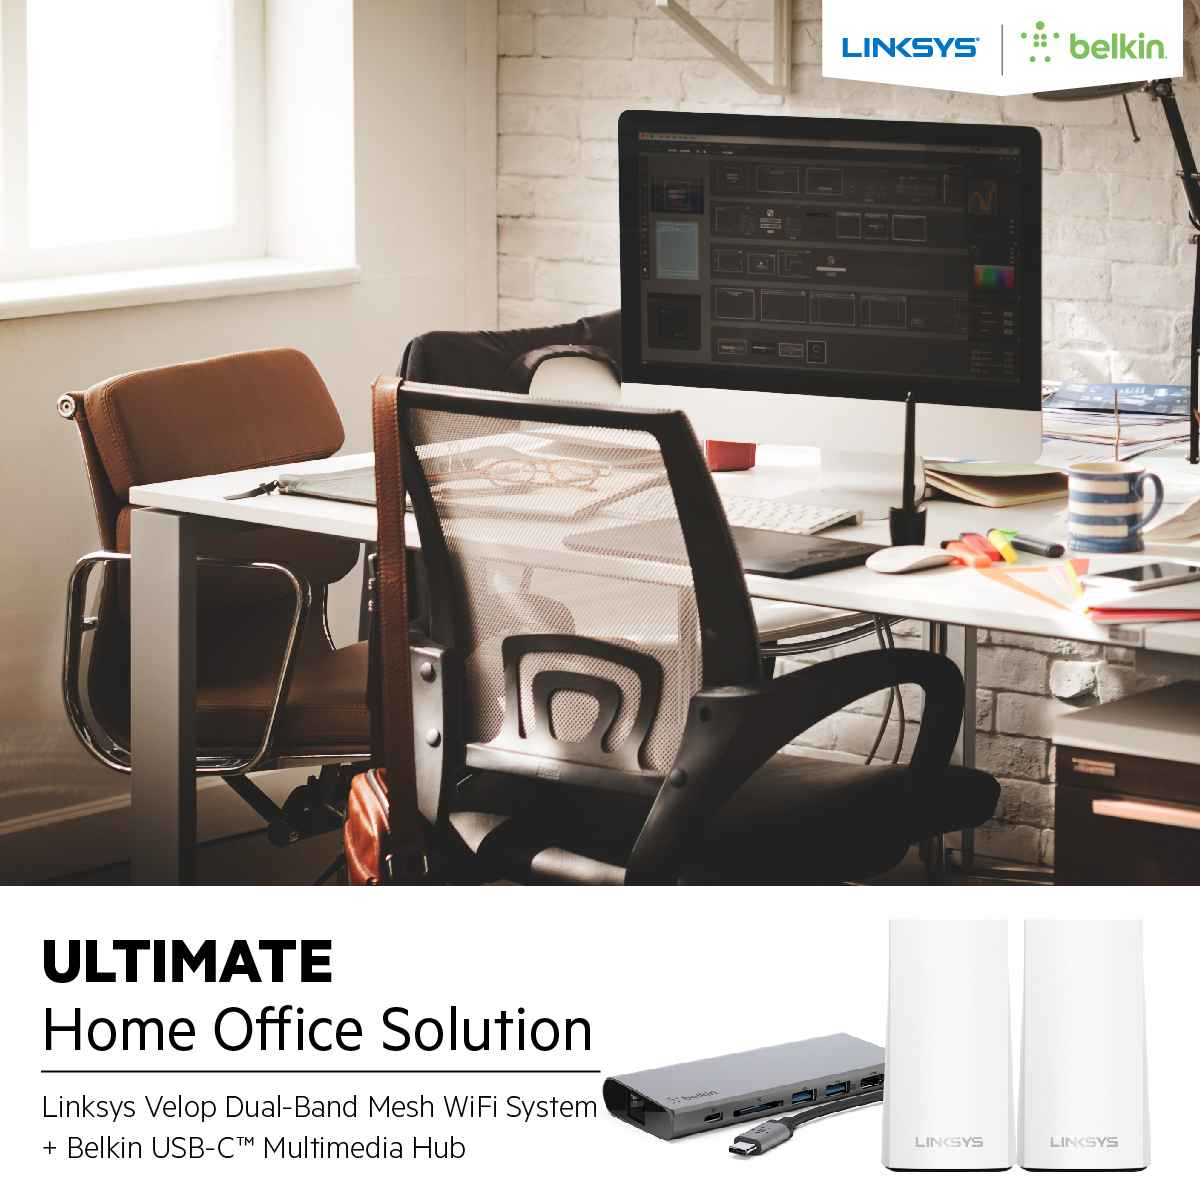 Ultimate Home Office Solution